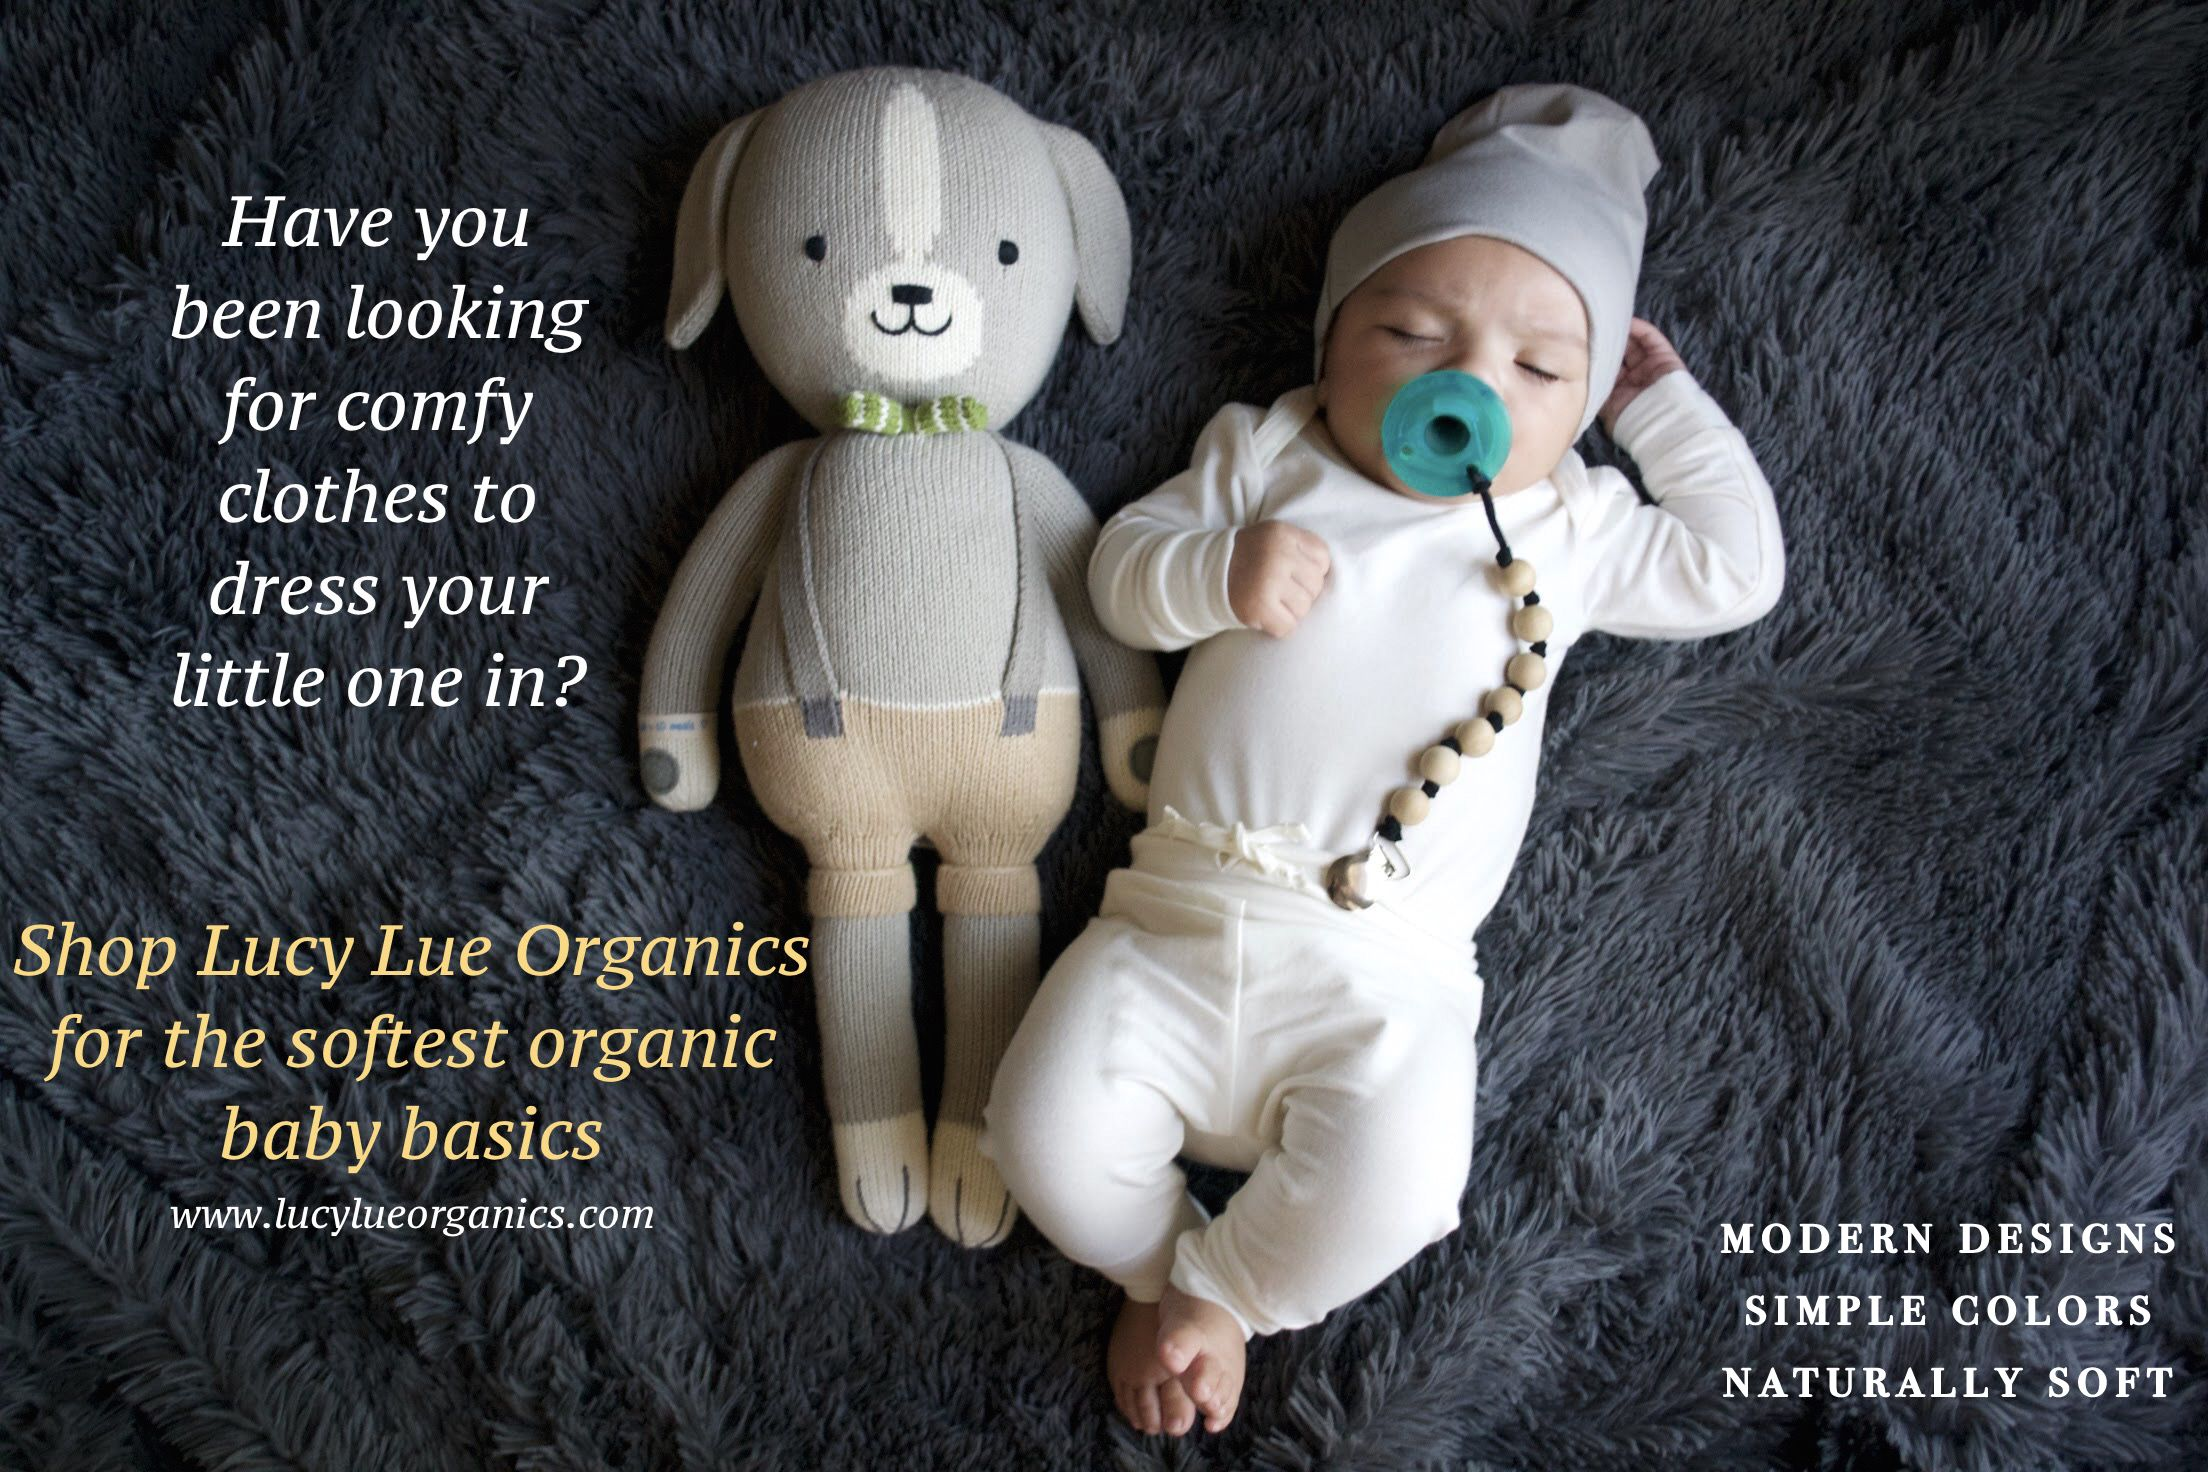 Shop Lucy Lue Organics for the best in organic baby clothes Baby